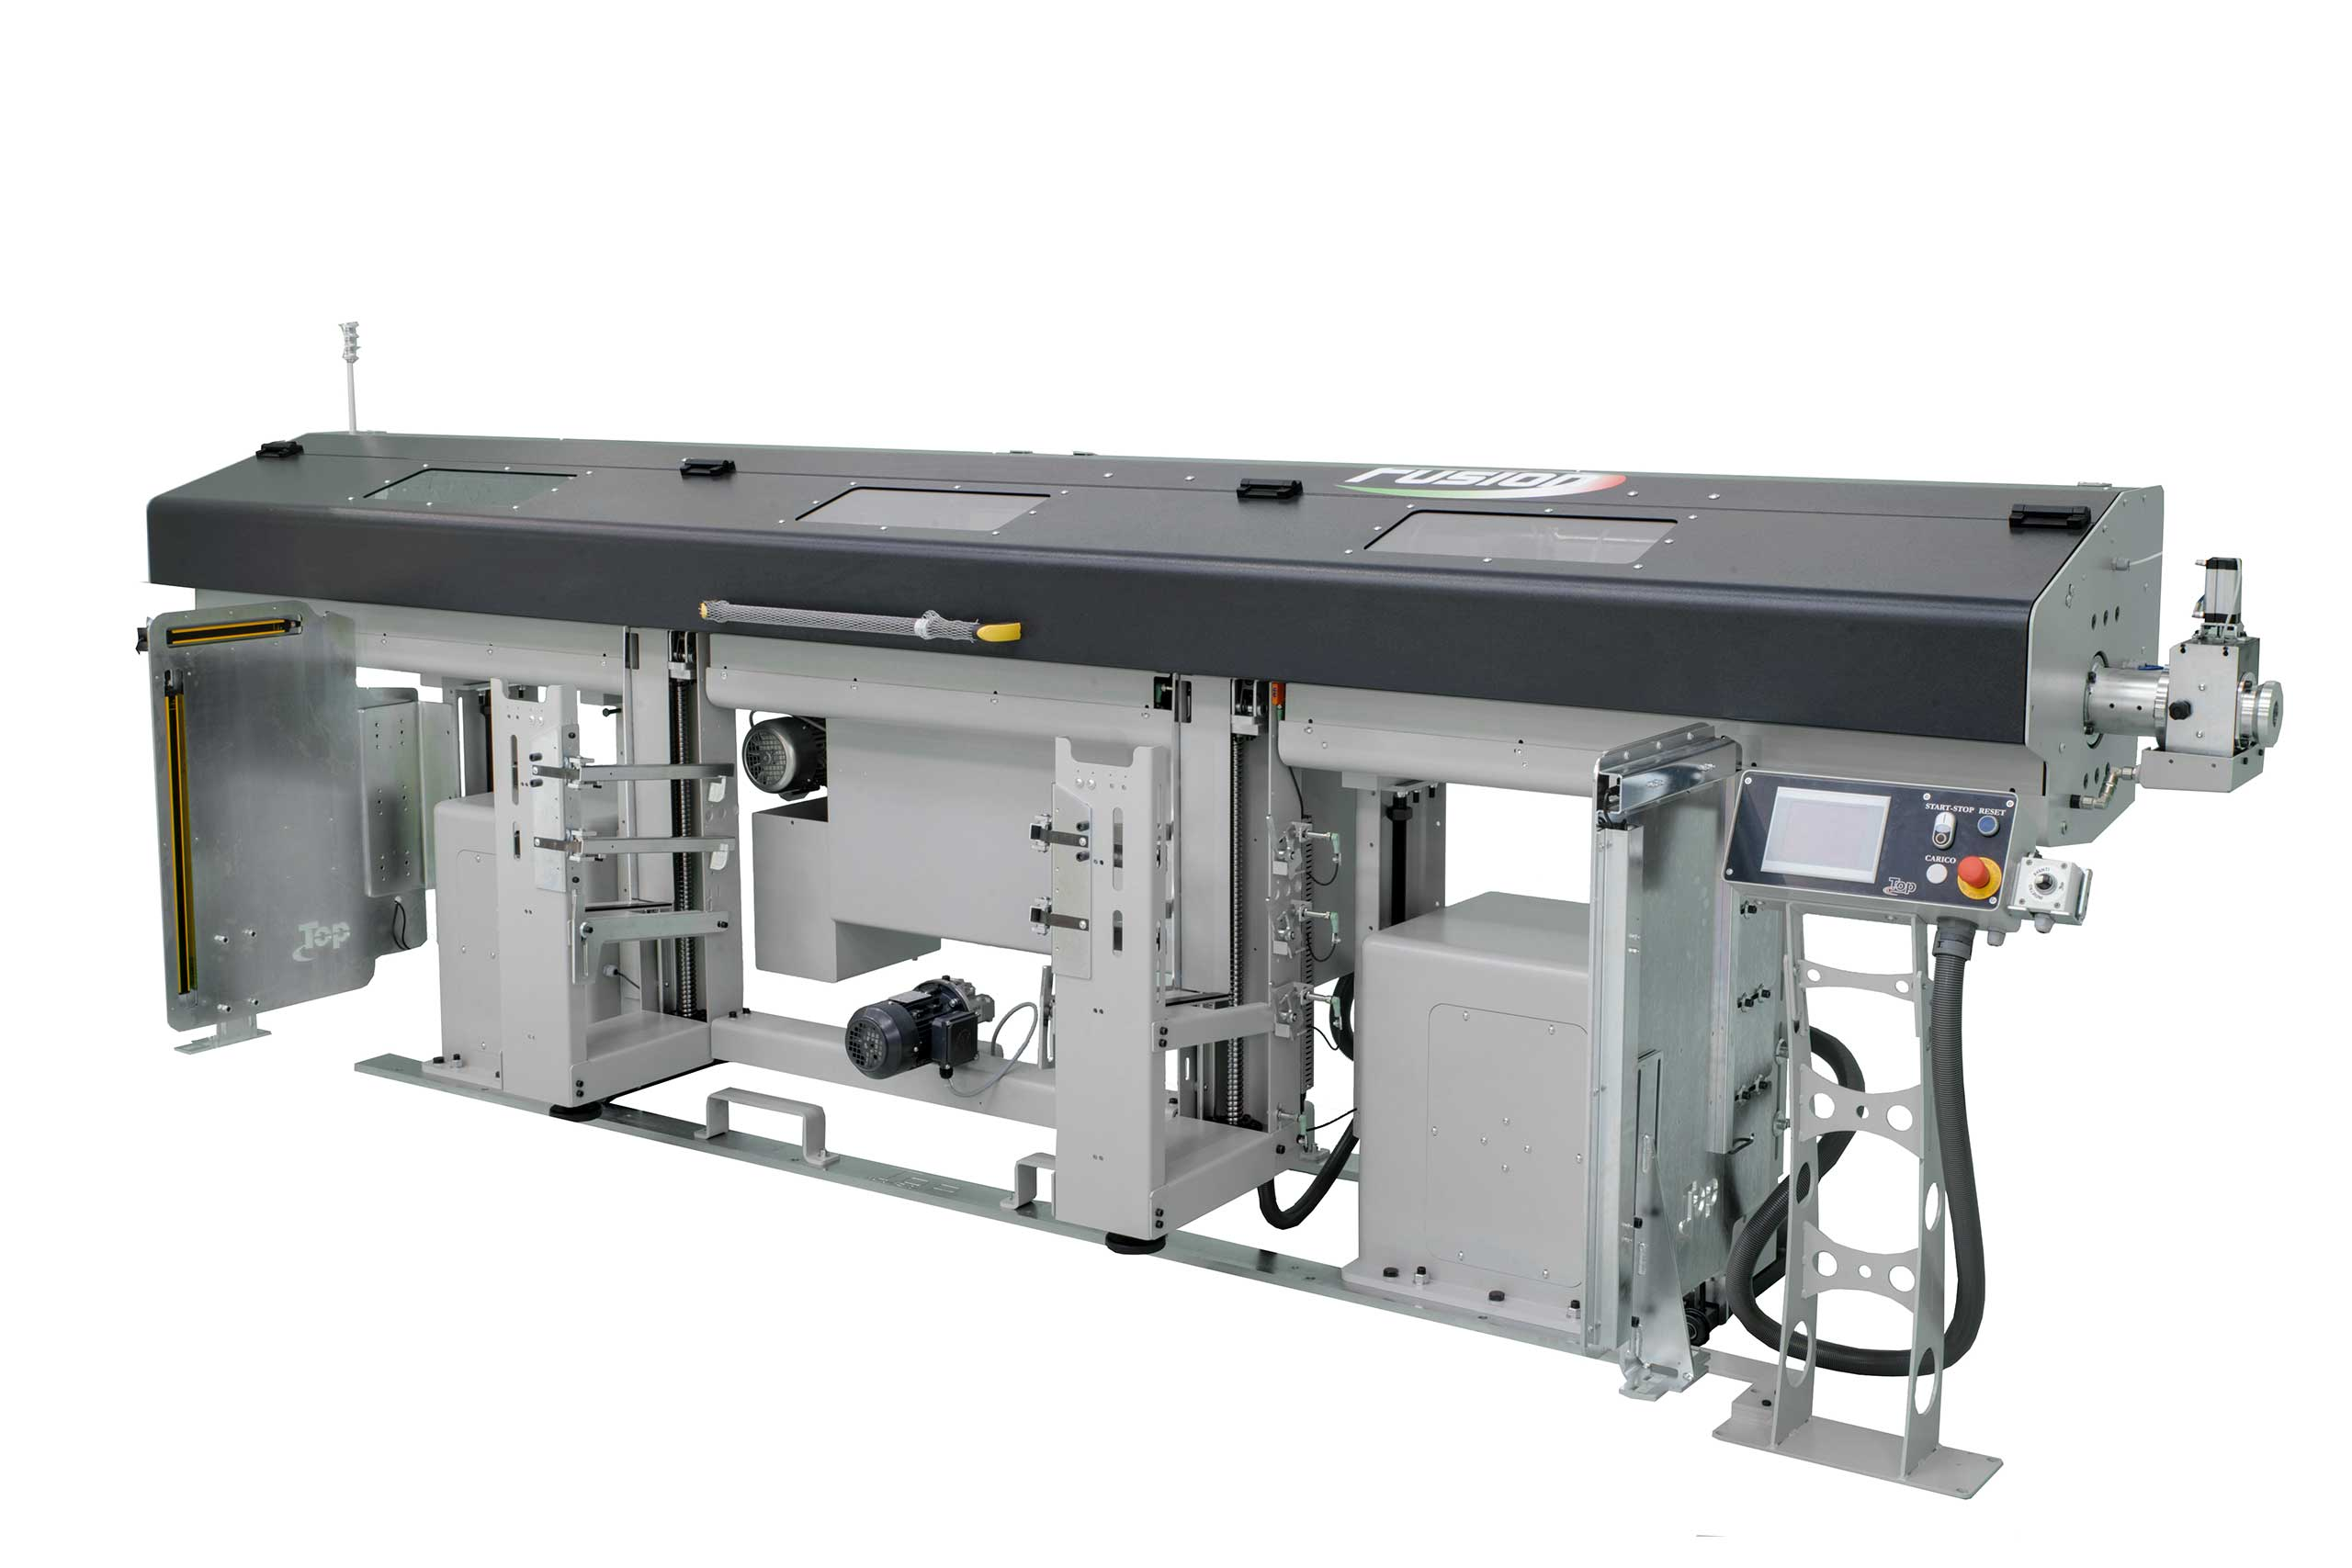 FUSION | Automatic loader for fixed head lathes